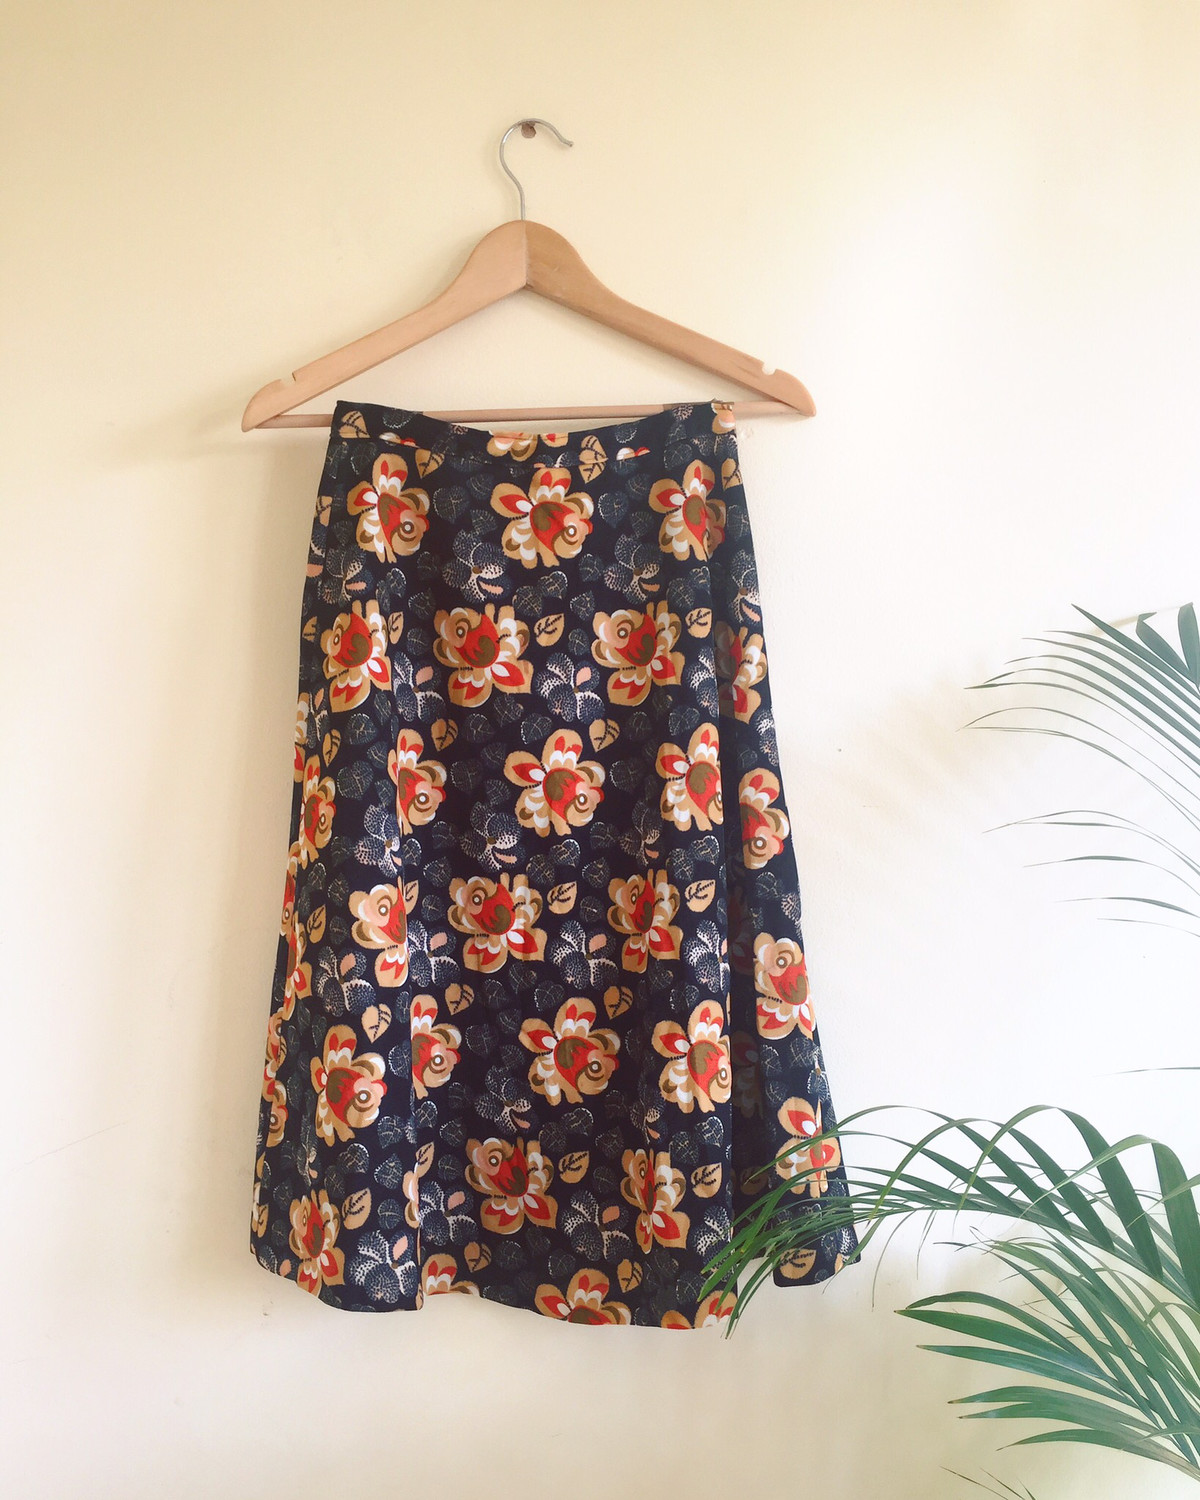 VINTAGE FLOWER POWER SKIRT